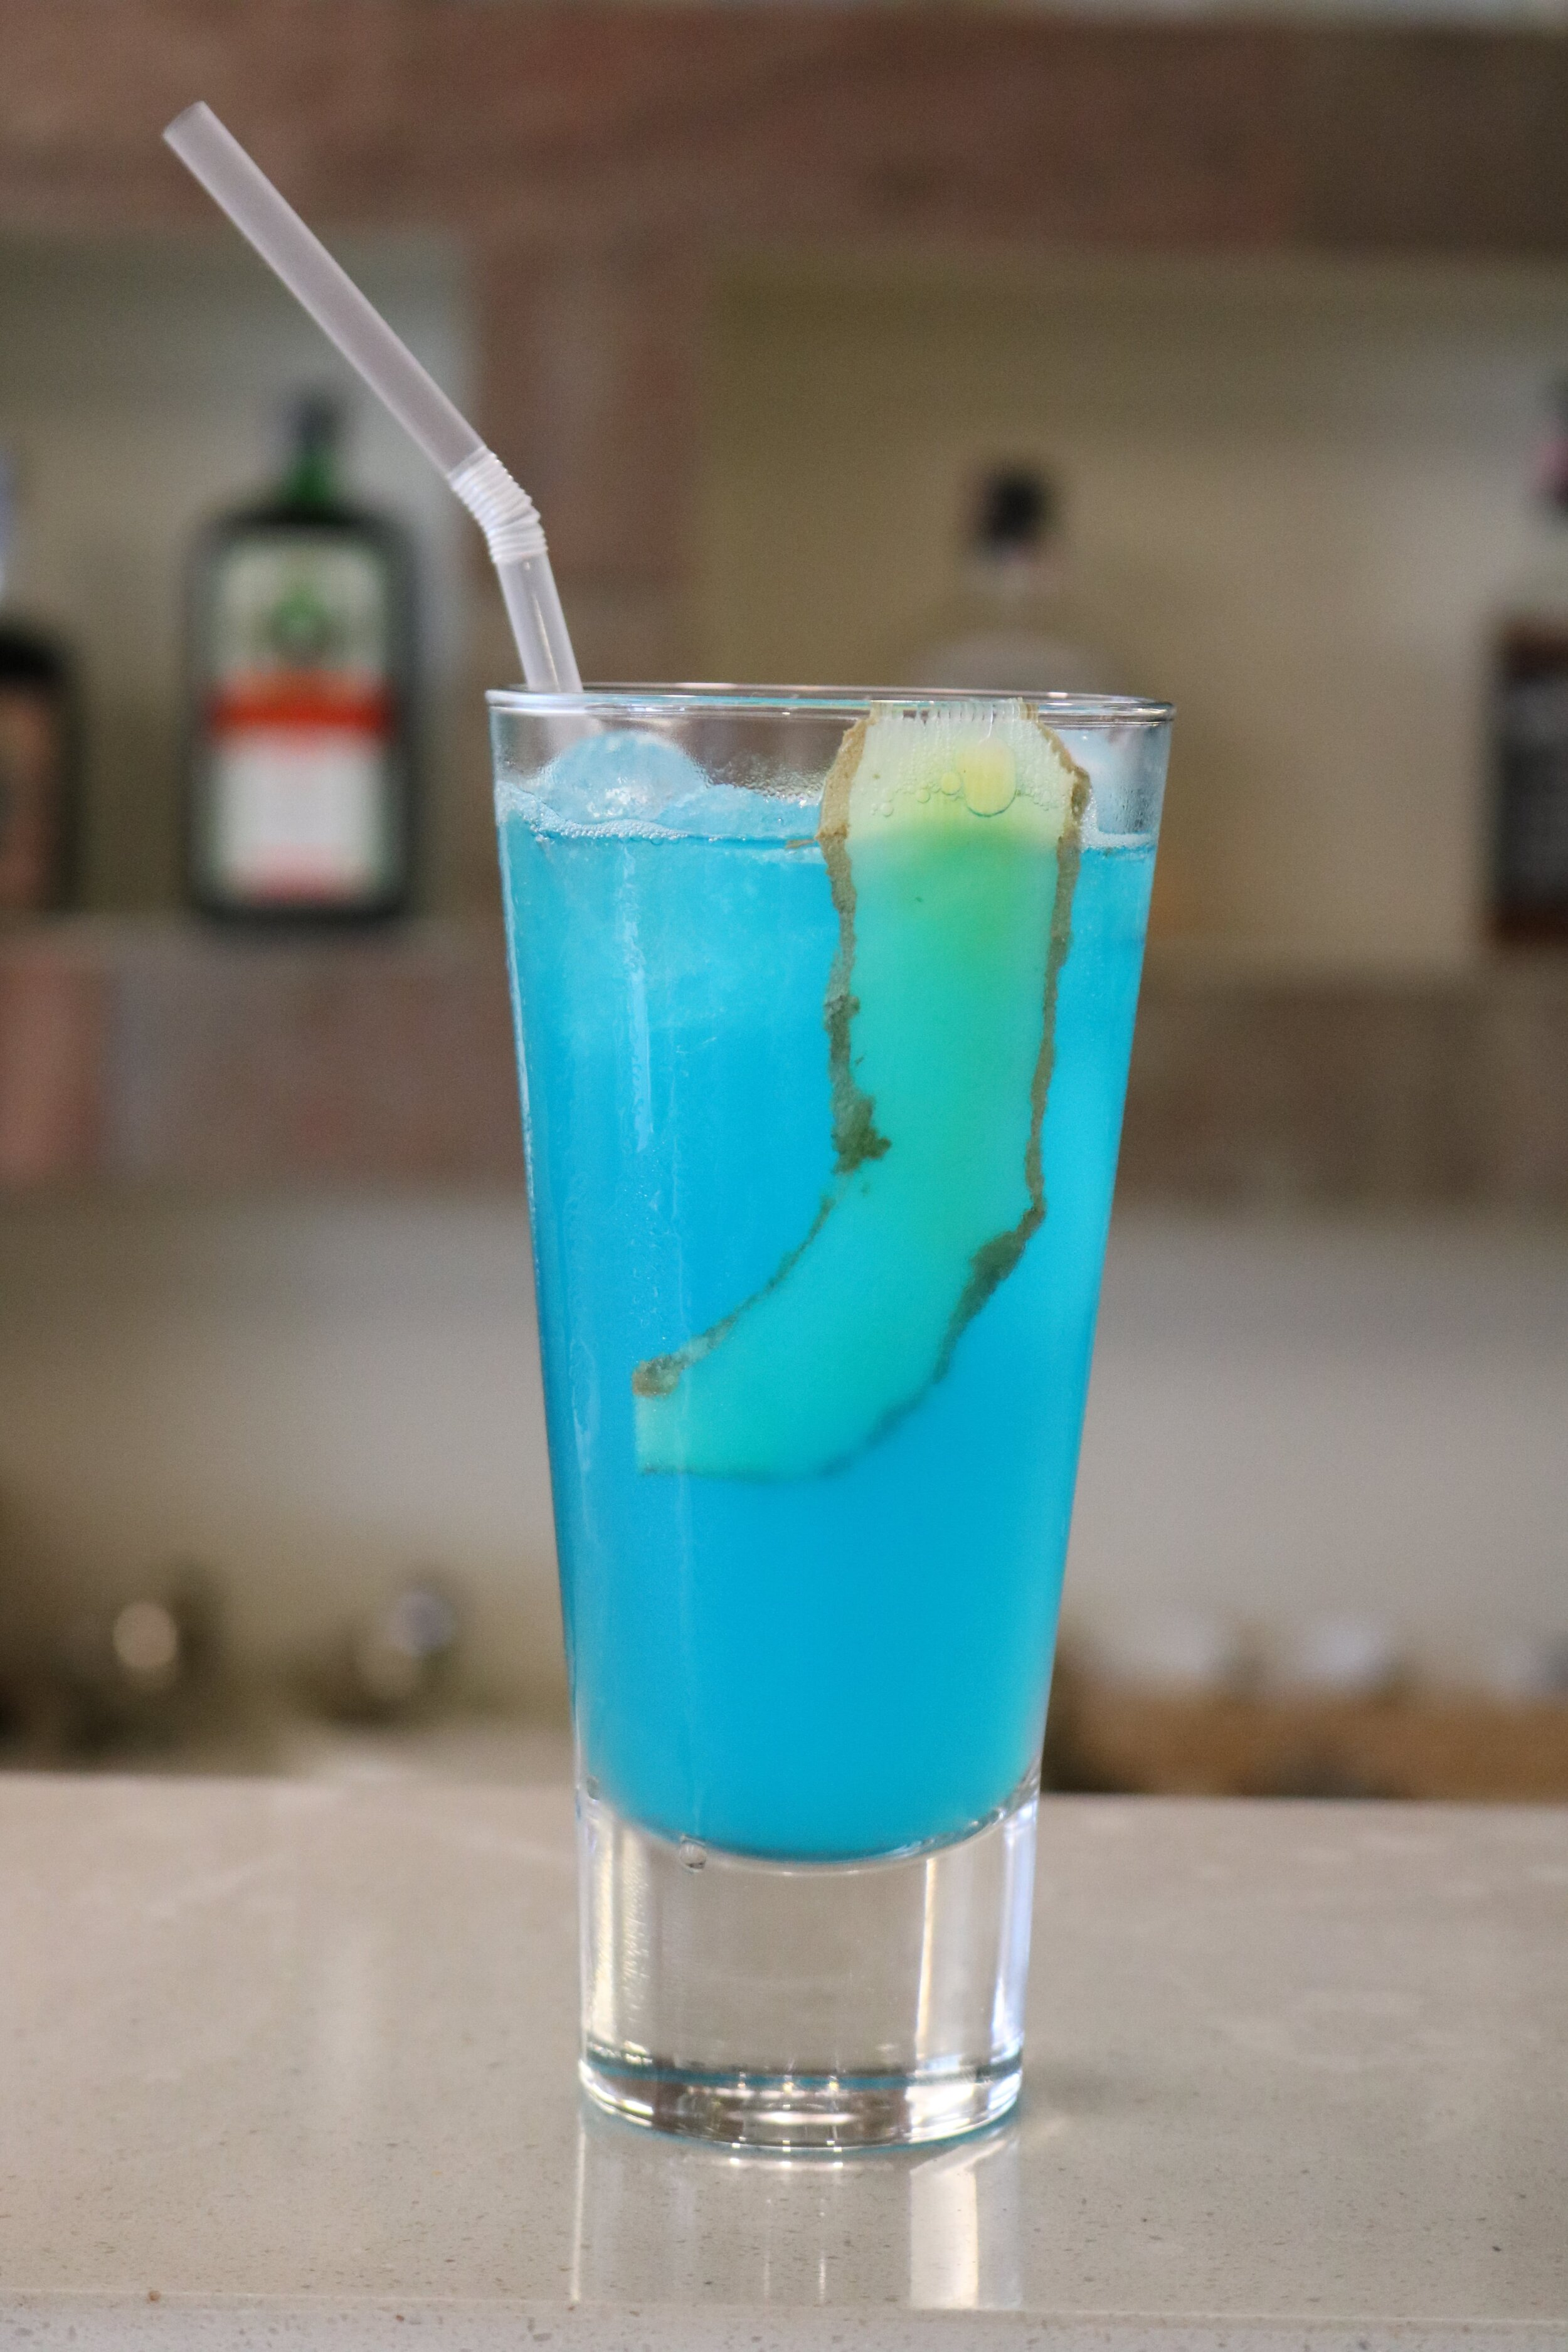 Himalayan Blush - Blue Curacao, home made ginger syrup & sparkling waterHRK 25